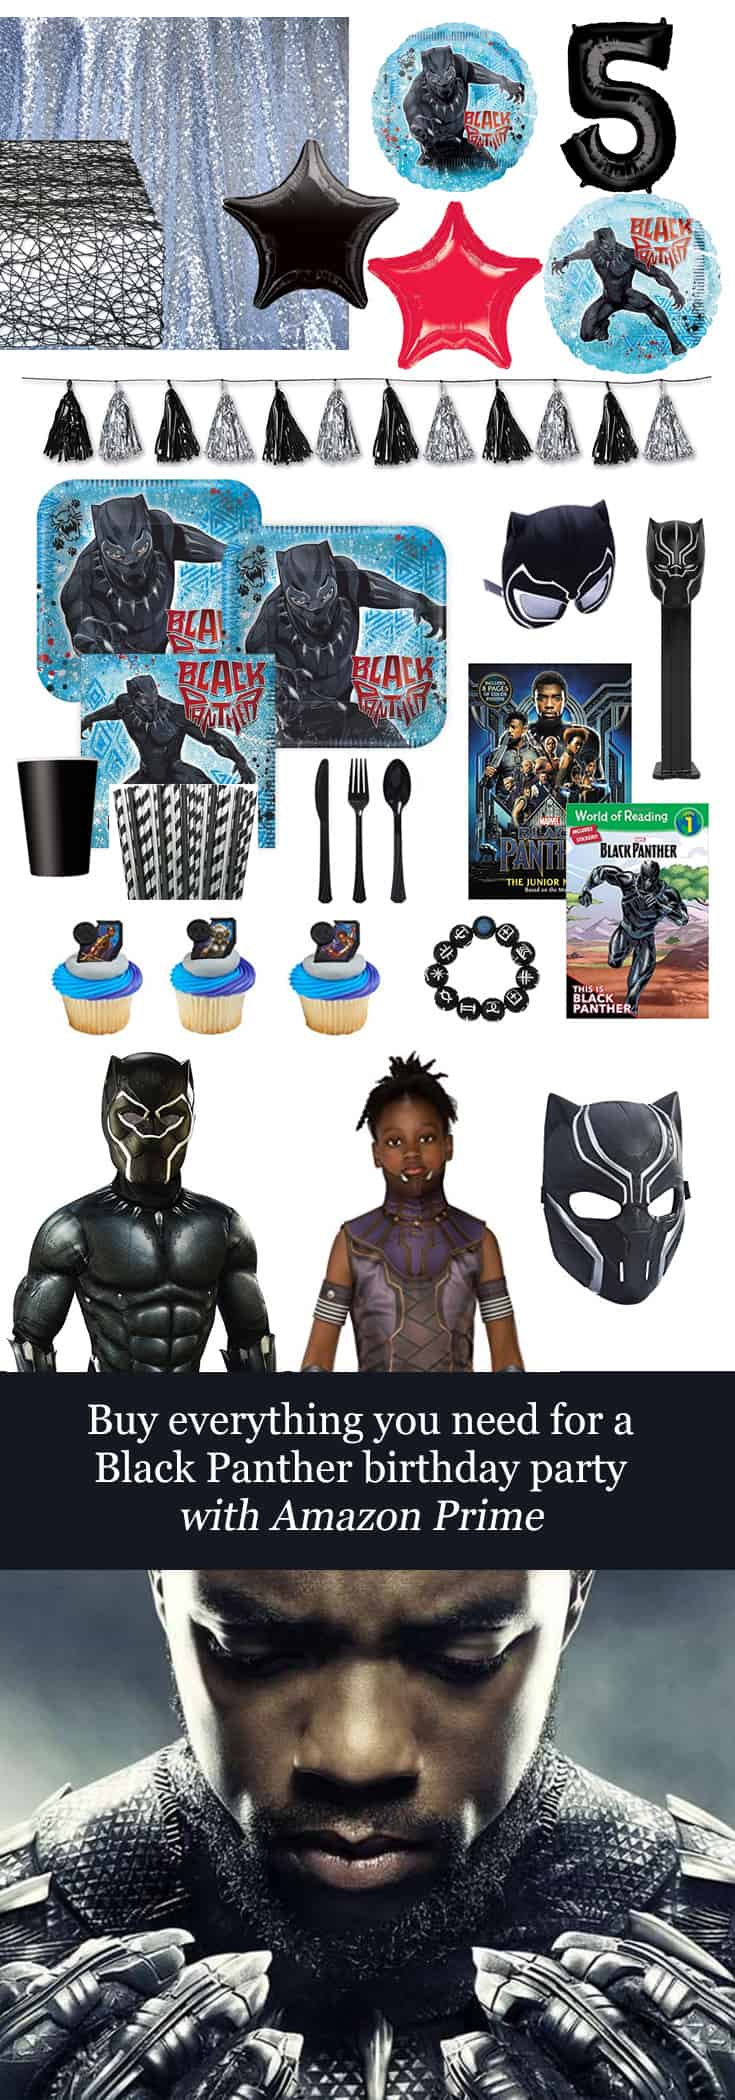 Buy Everything you Need for a #BlackPanther Birthday Party with #Amazon Prime #DSMMC #Disney #Marvel #Avengers #Shuri #TChalla #Wakanda